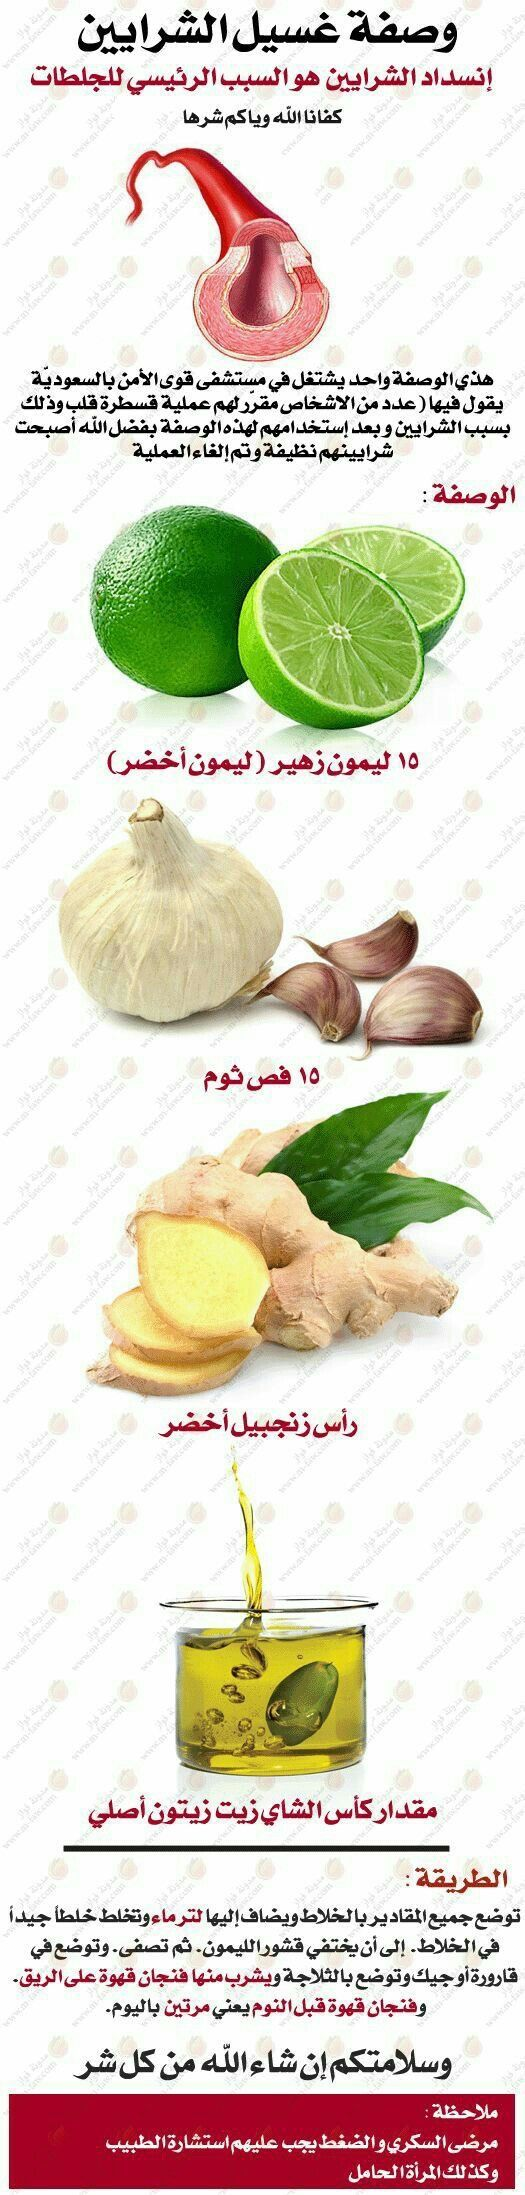 Pin By Meri Beo On ورد وفل Health Fitness Nutrition Health And Nutrition Organic Health